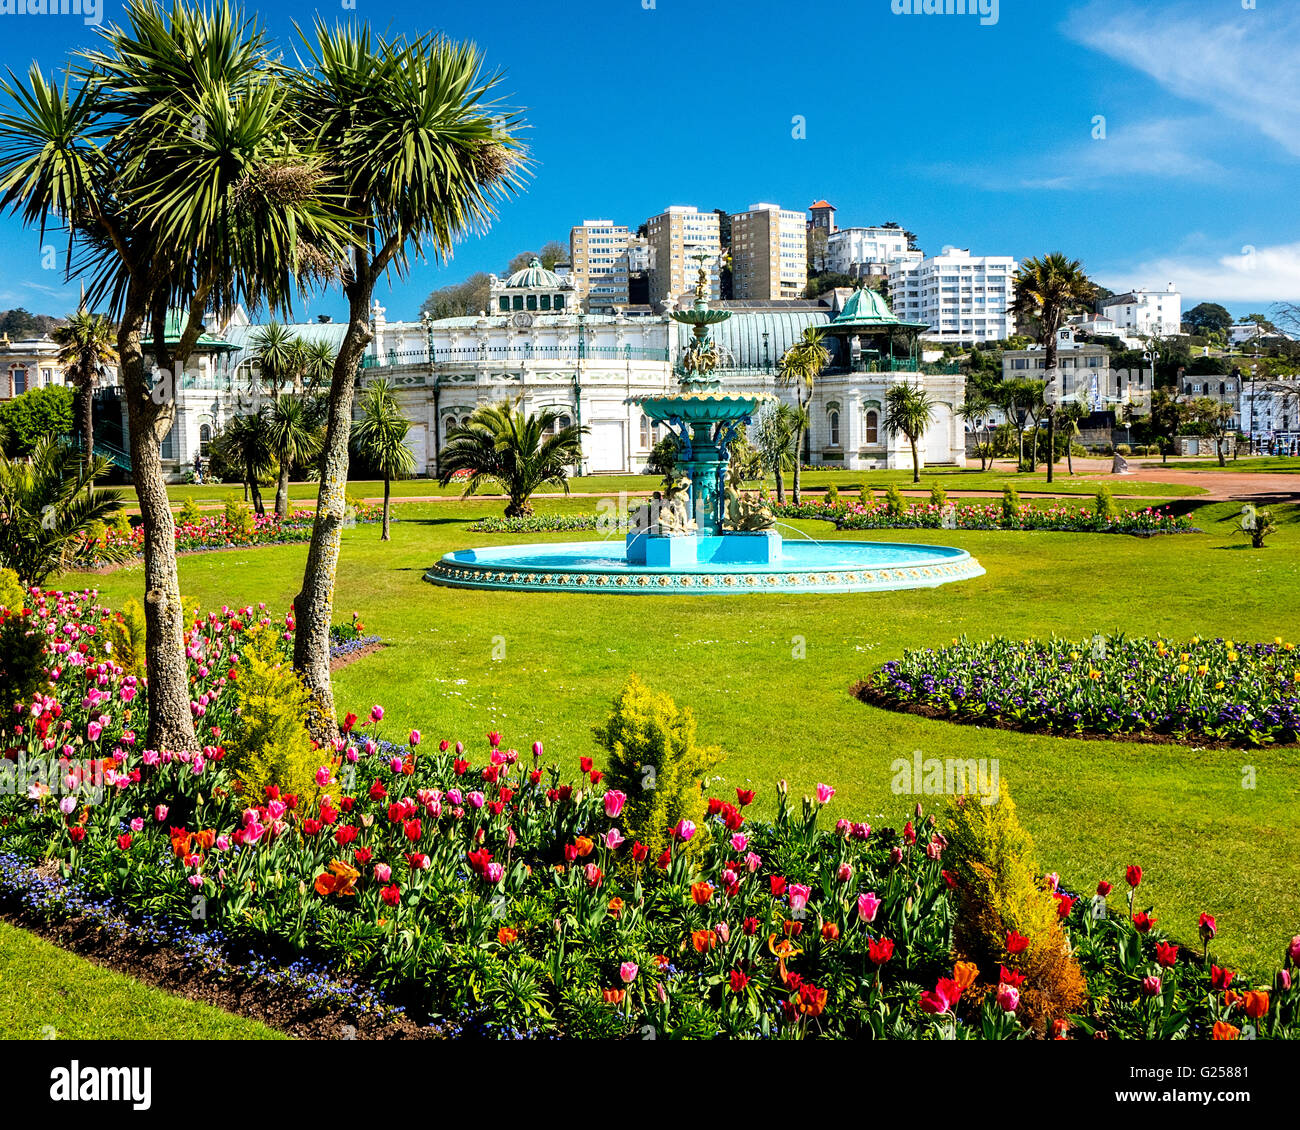 Go - Devon : princess gardens et pavilion, Torquay, riviera anglaise Photo Stock